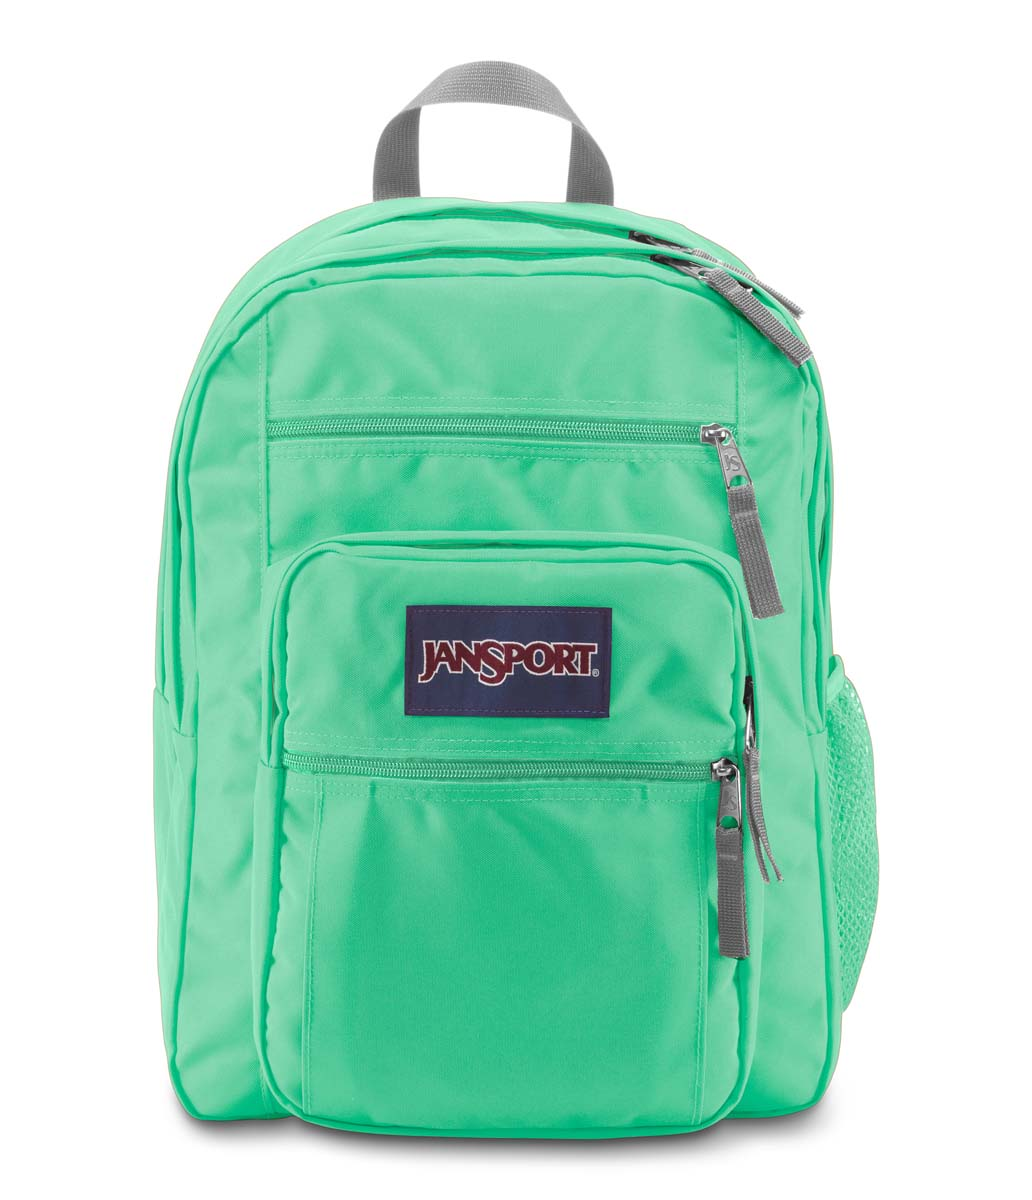 JanSport รุ่น BIG STUDENT - SEAFOAM GREEN